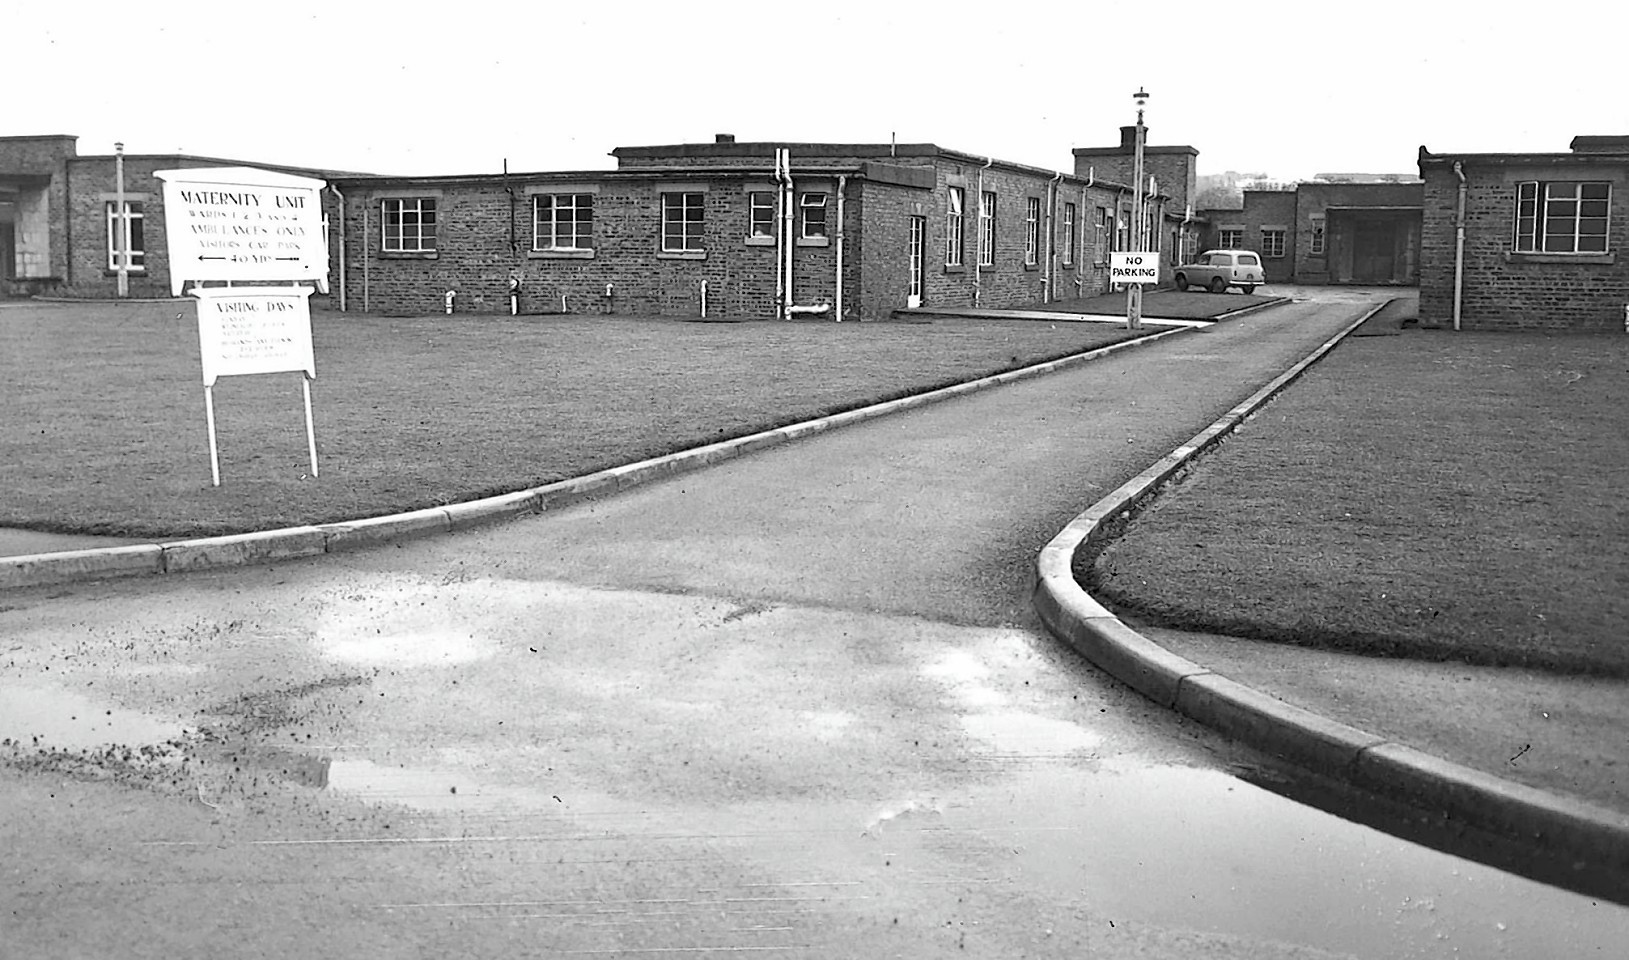 Looking back through the years of Raigmore Hospital